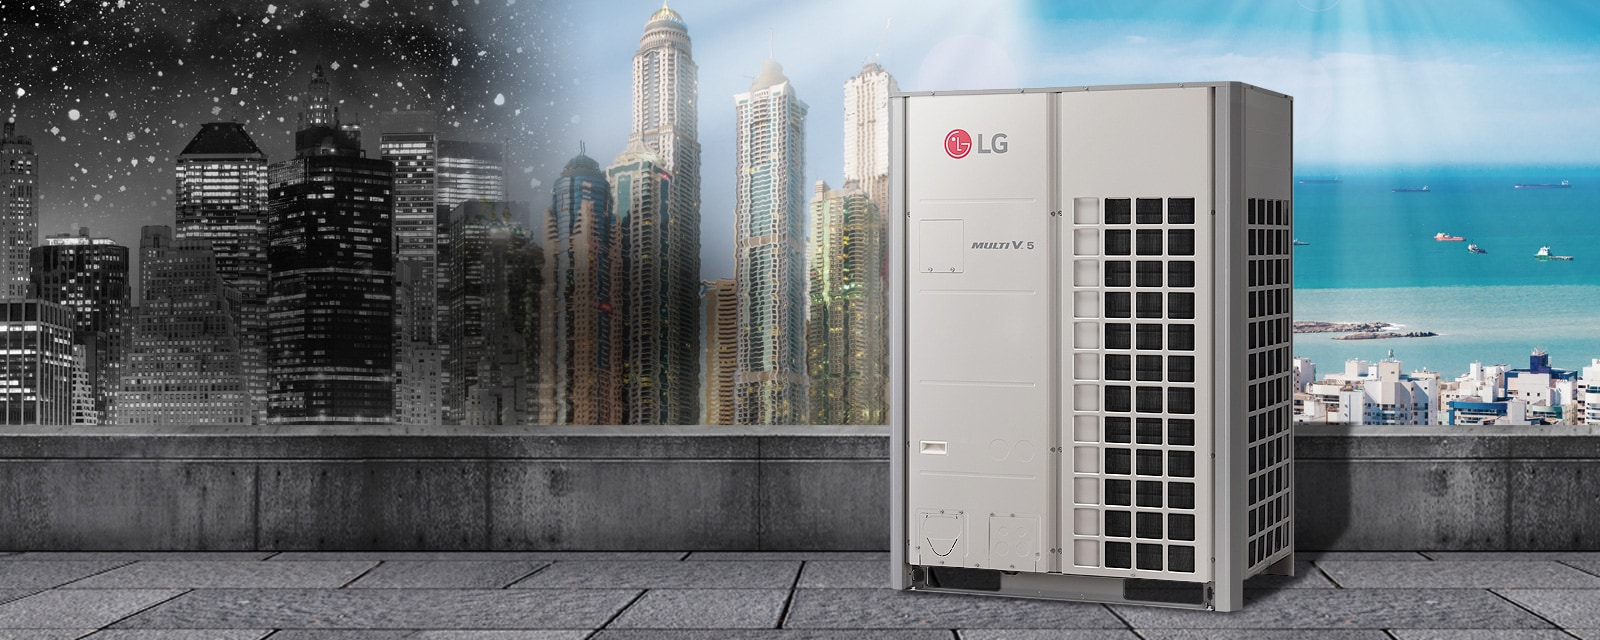 Lg Multi V 5 Air Conditioning System Lg Uk Business